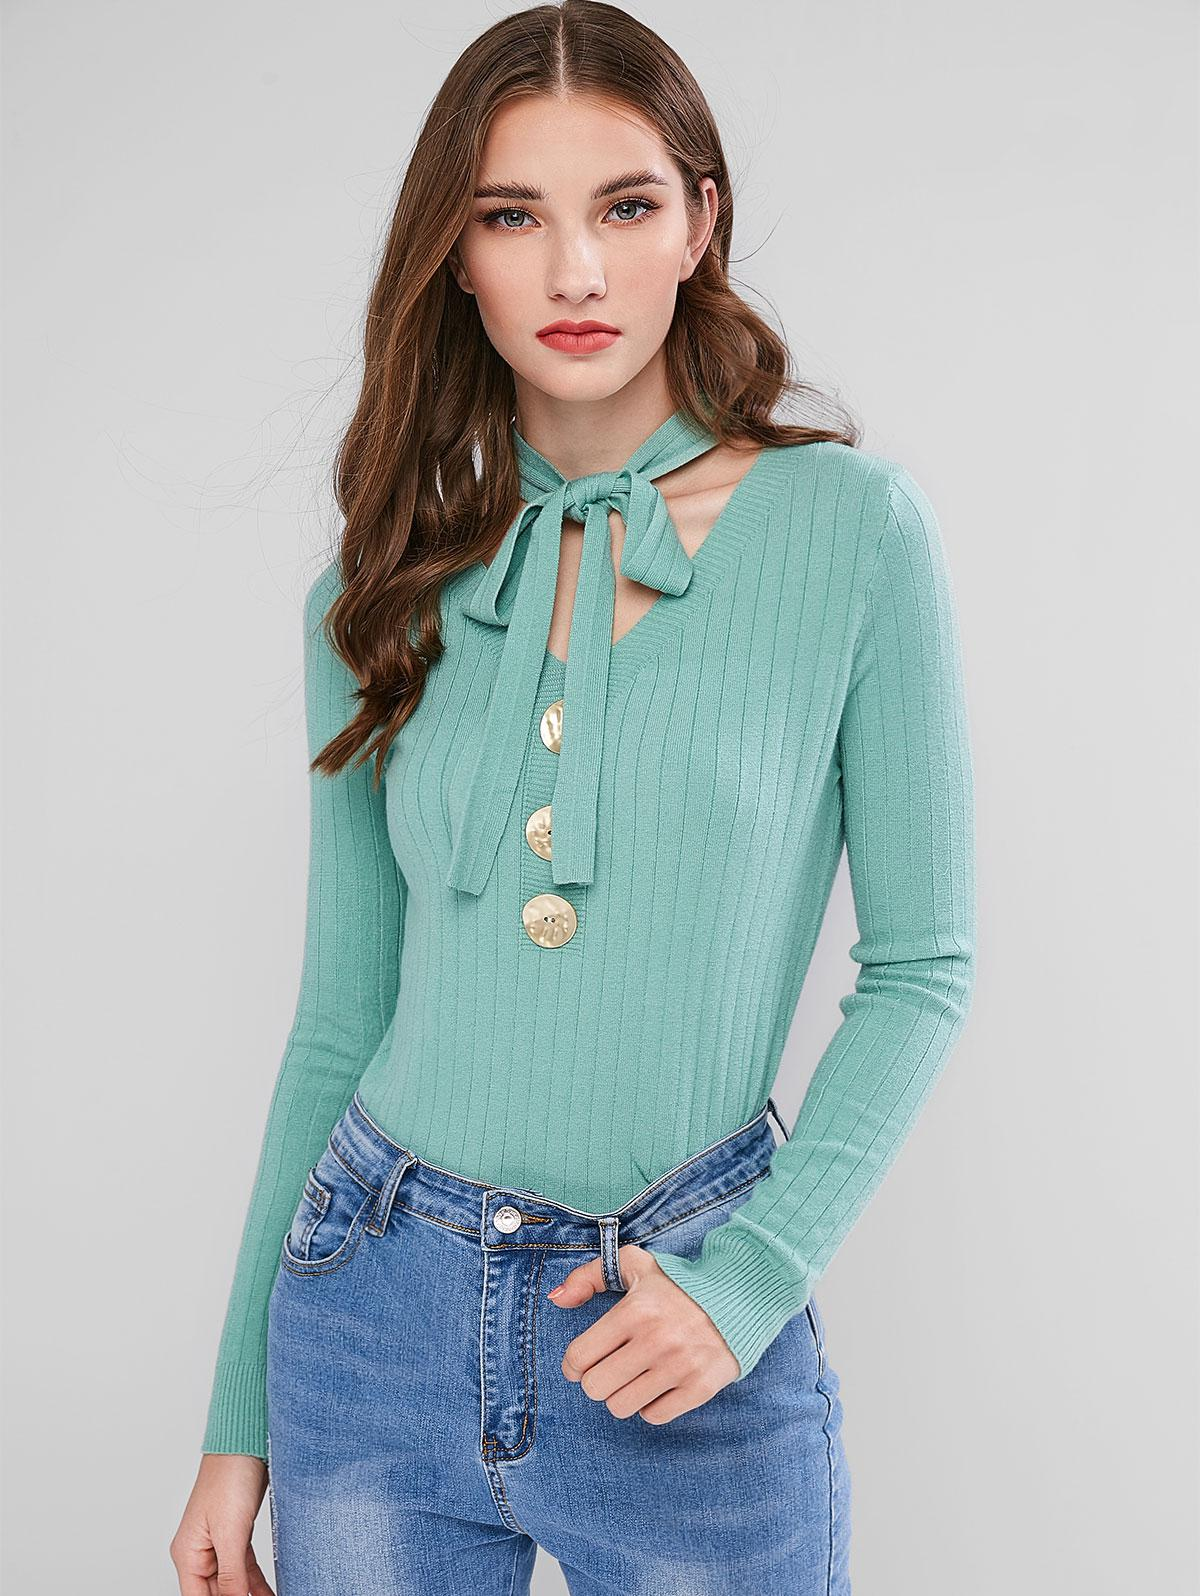 Bow Tie V Neck Mock Button Sweater